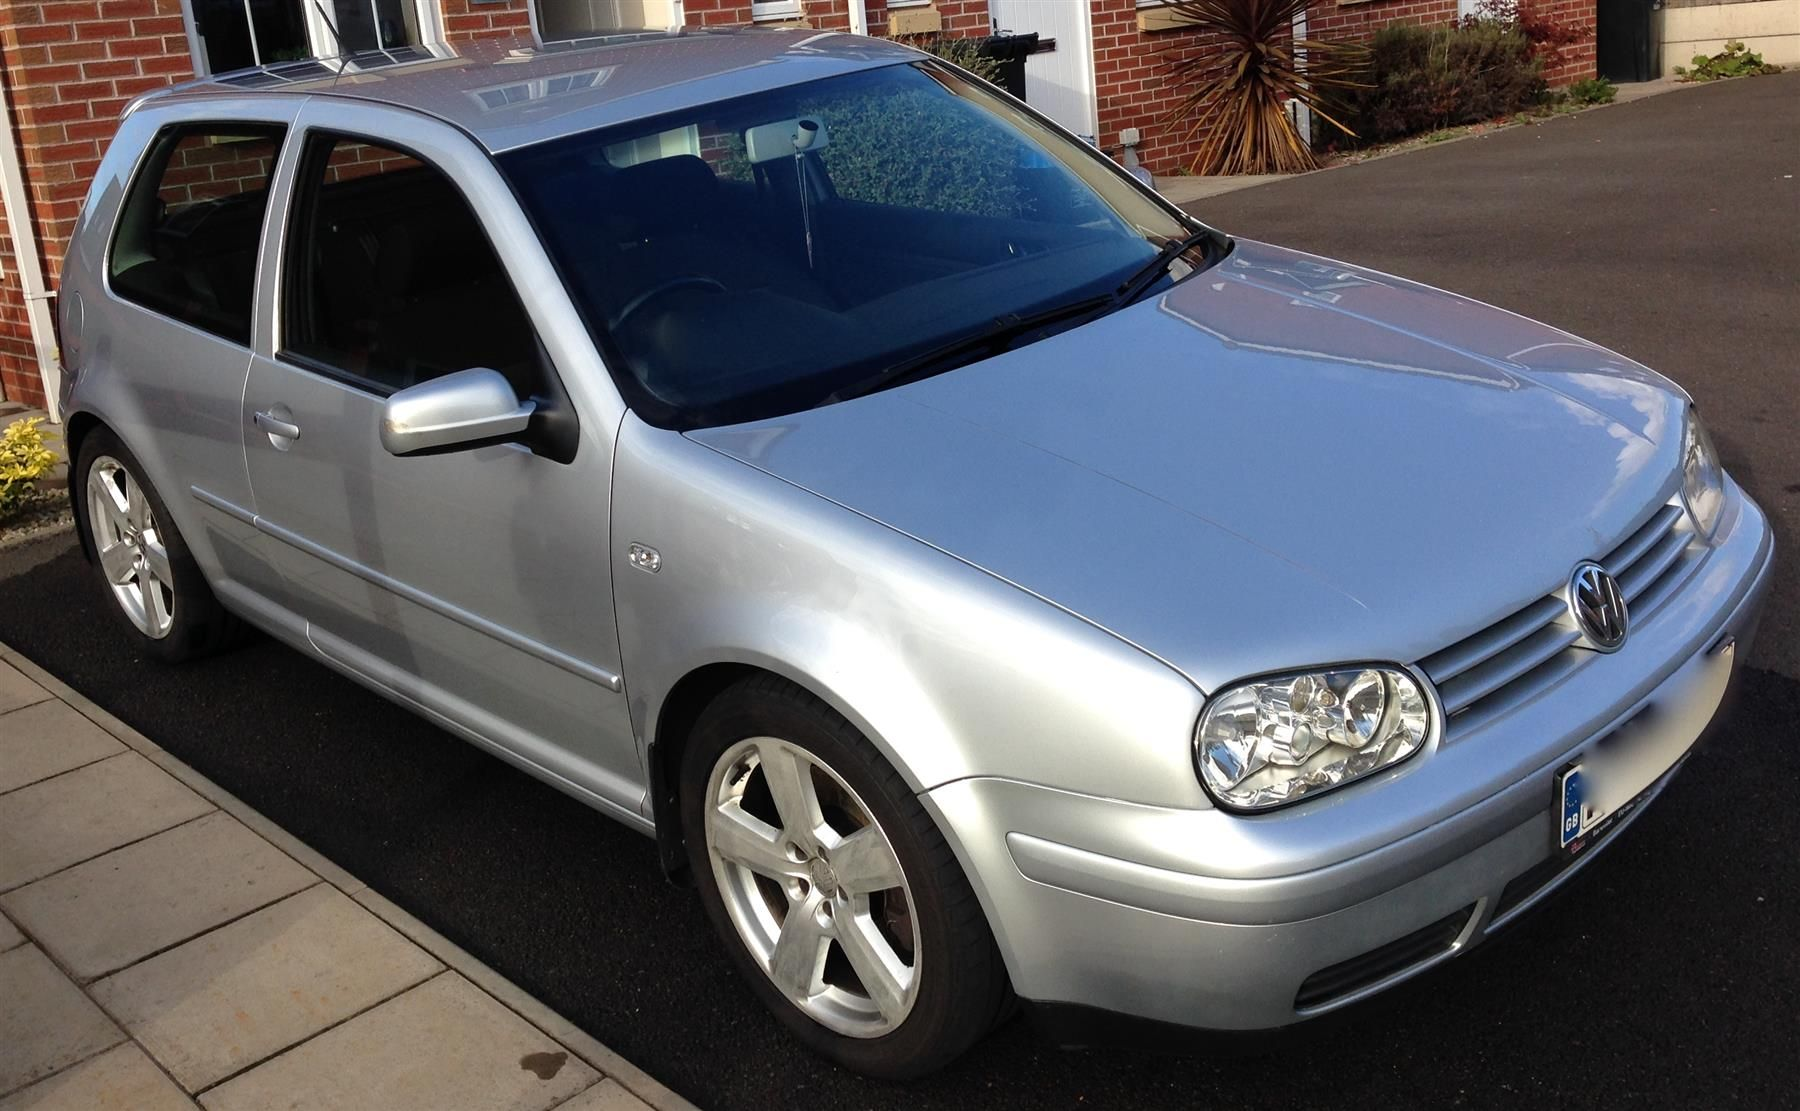 pcp view solutions finance passat on offers used x news deposit offer great cars volkswagen contributions